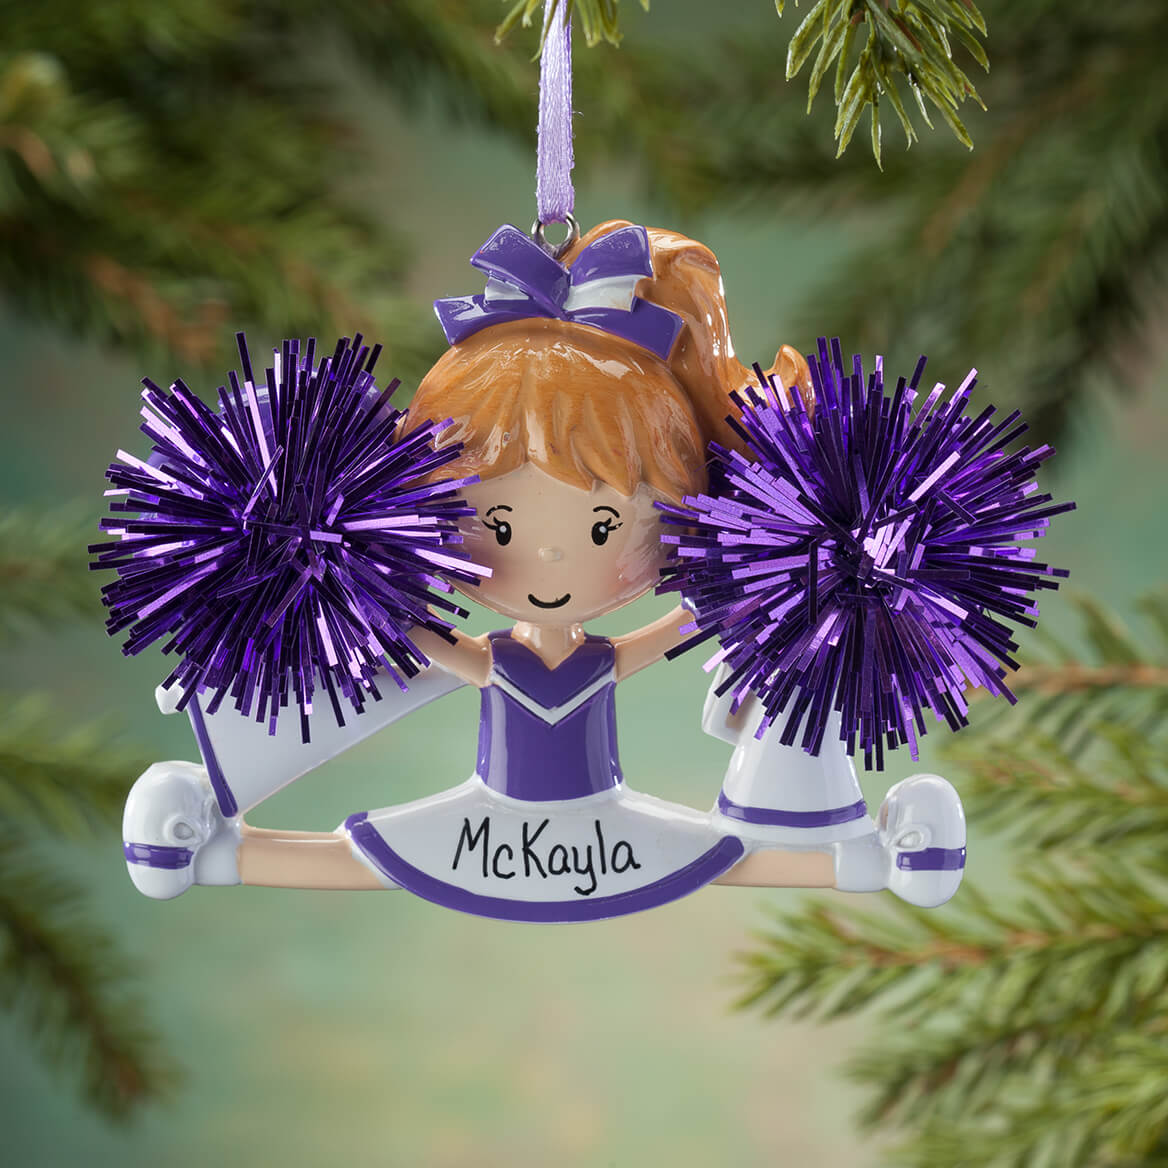 Personalized Cheer Ornament-364906